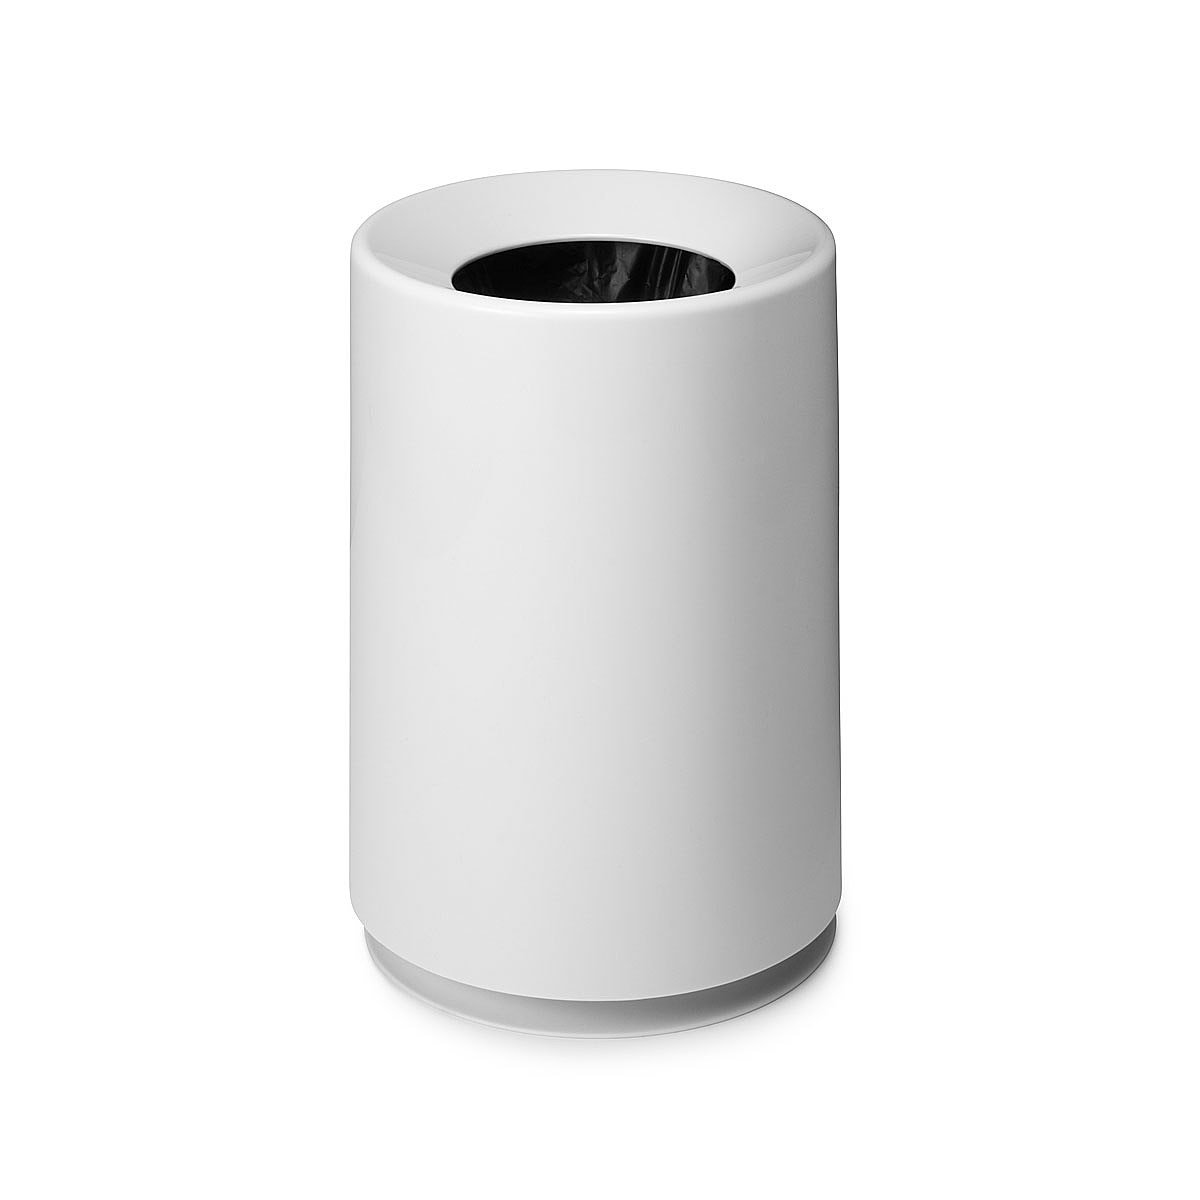 Small Bathroom Garbage Cans classic tubelor trash can | decorative trash cans | uncommongoods